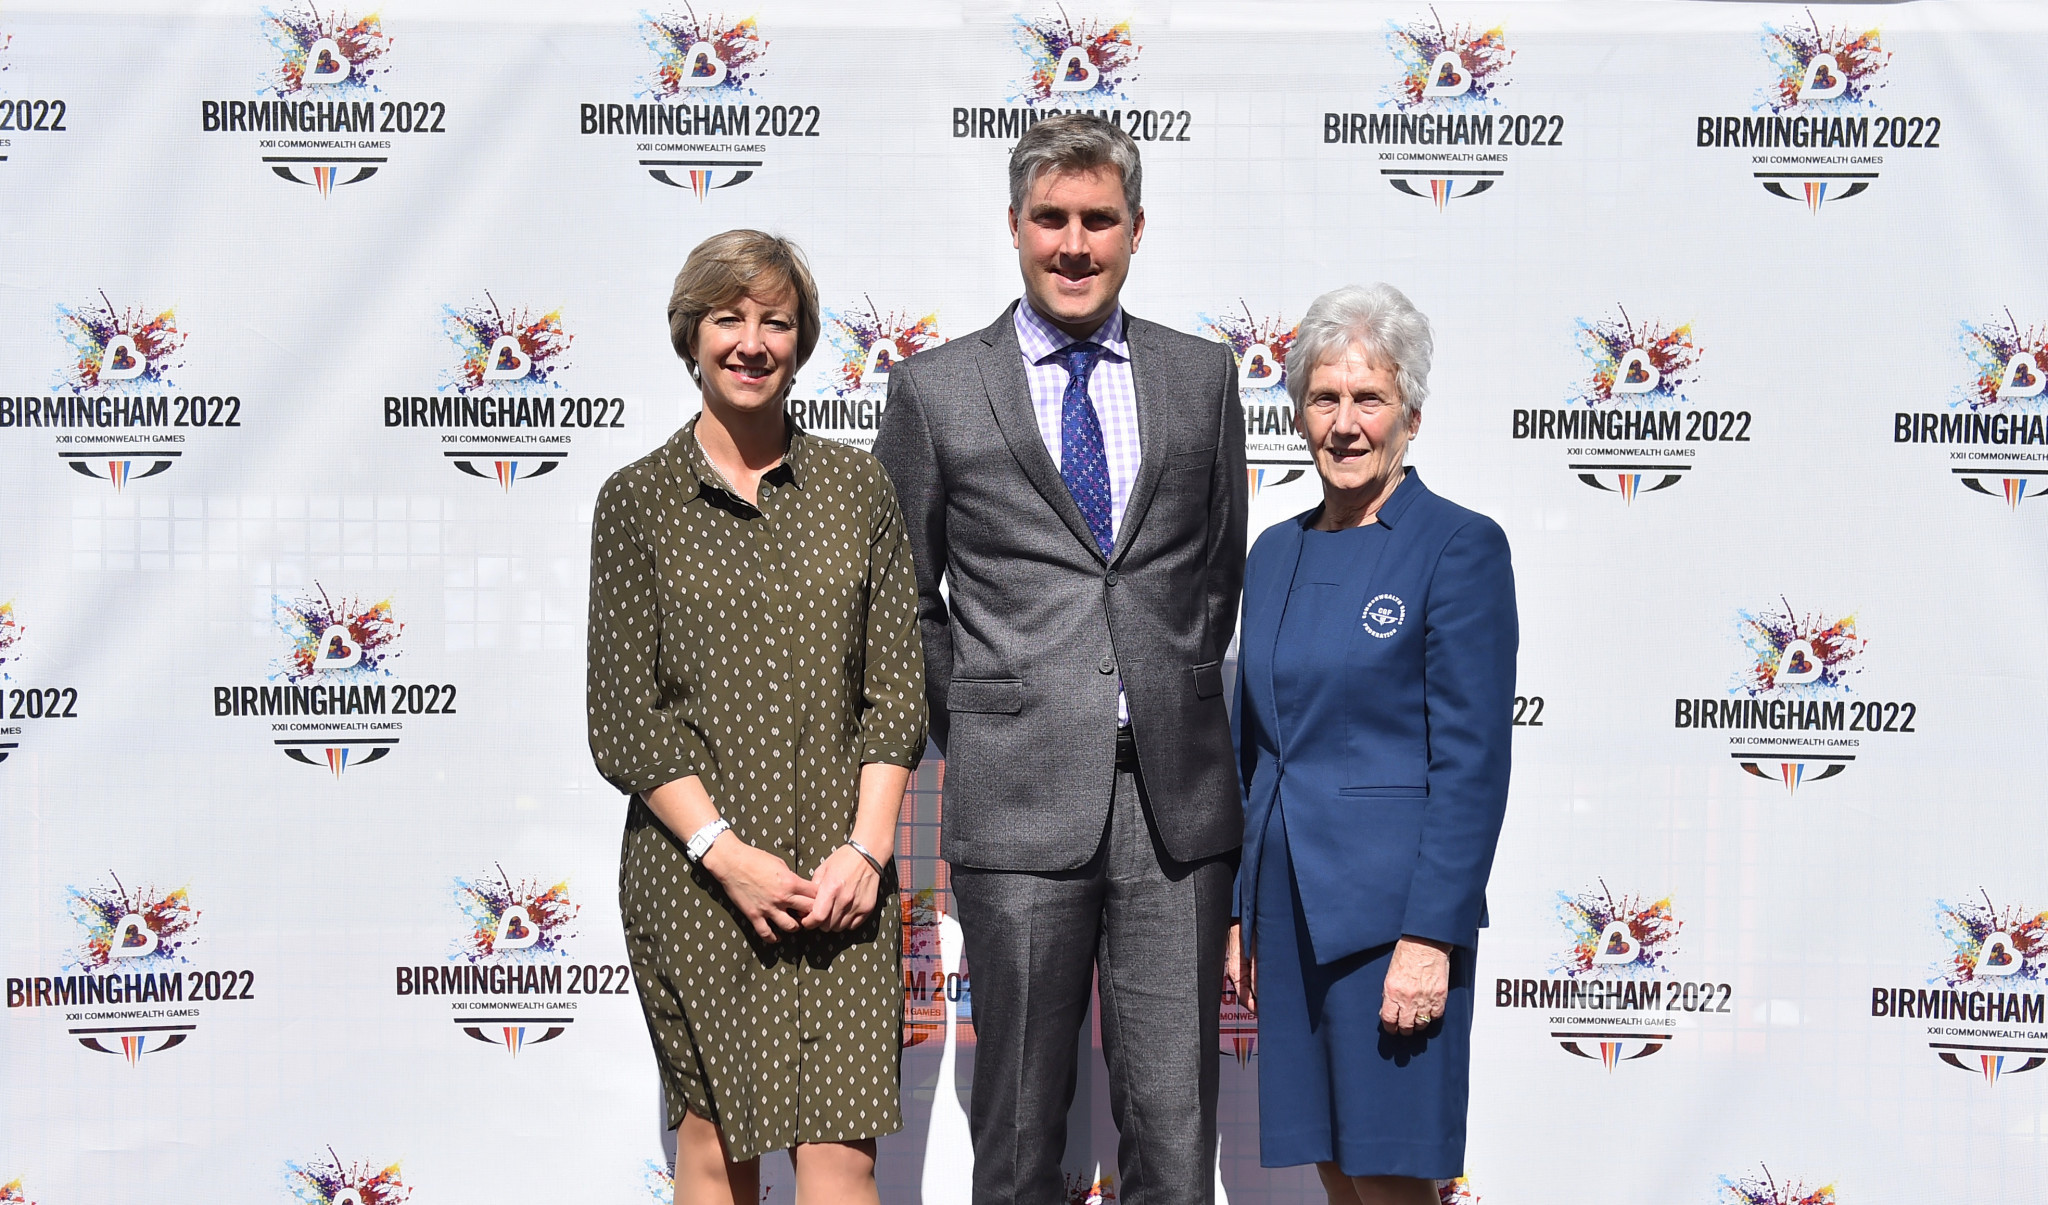 Birmingham 2022 chief executive Ian Reid, centre, says having the budget confirmed is a key milestone, while CGF President Dame Louise Martin, right, claims confirmation of the public investment reinforces the Commonwealth Games' position as a cost-efficient multi-sport event ©Getty Images